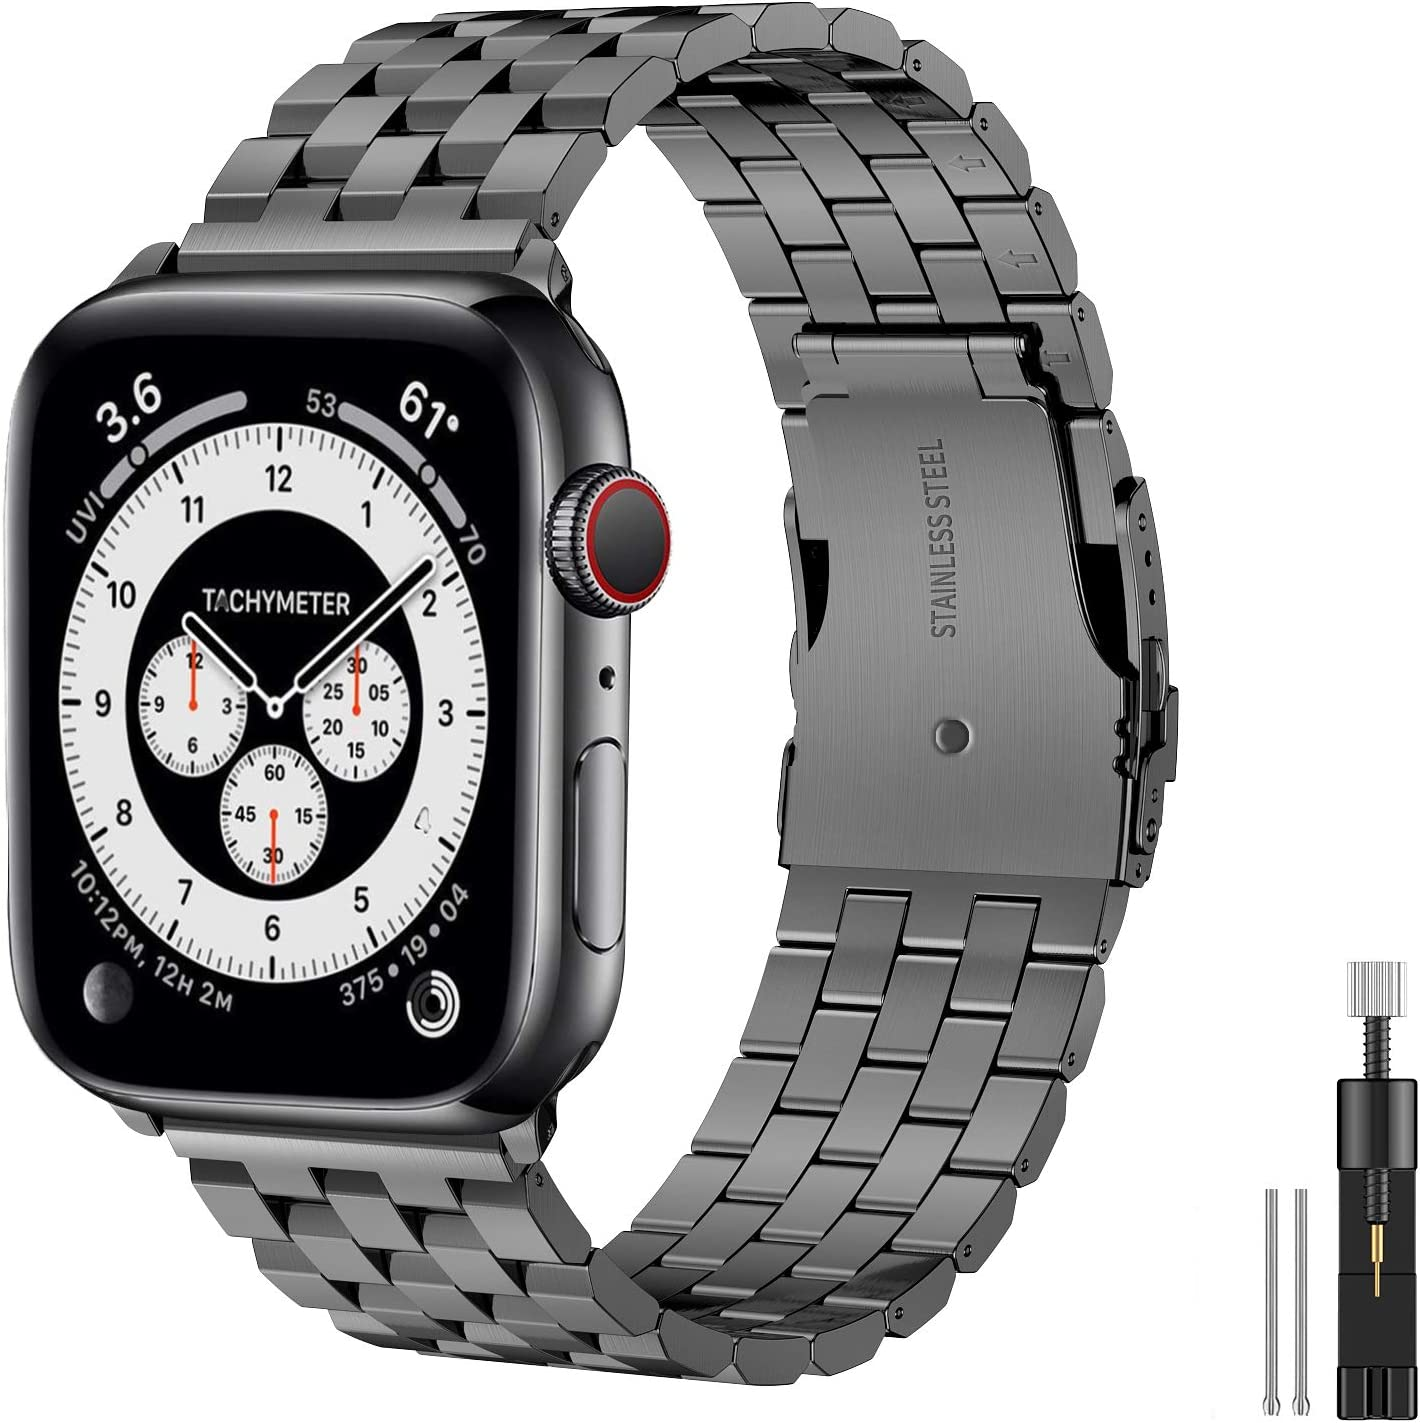 Hallsen Compatible with Apple Watch Bands 40mm 38mm, Upgraded Solid Stainless Steel Metal Apple Watch Band iWatch Replacement Strap for Apple Watch Series 6/5/4/3/2/1/SE (Space Gray, 38/40mm)